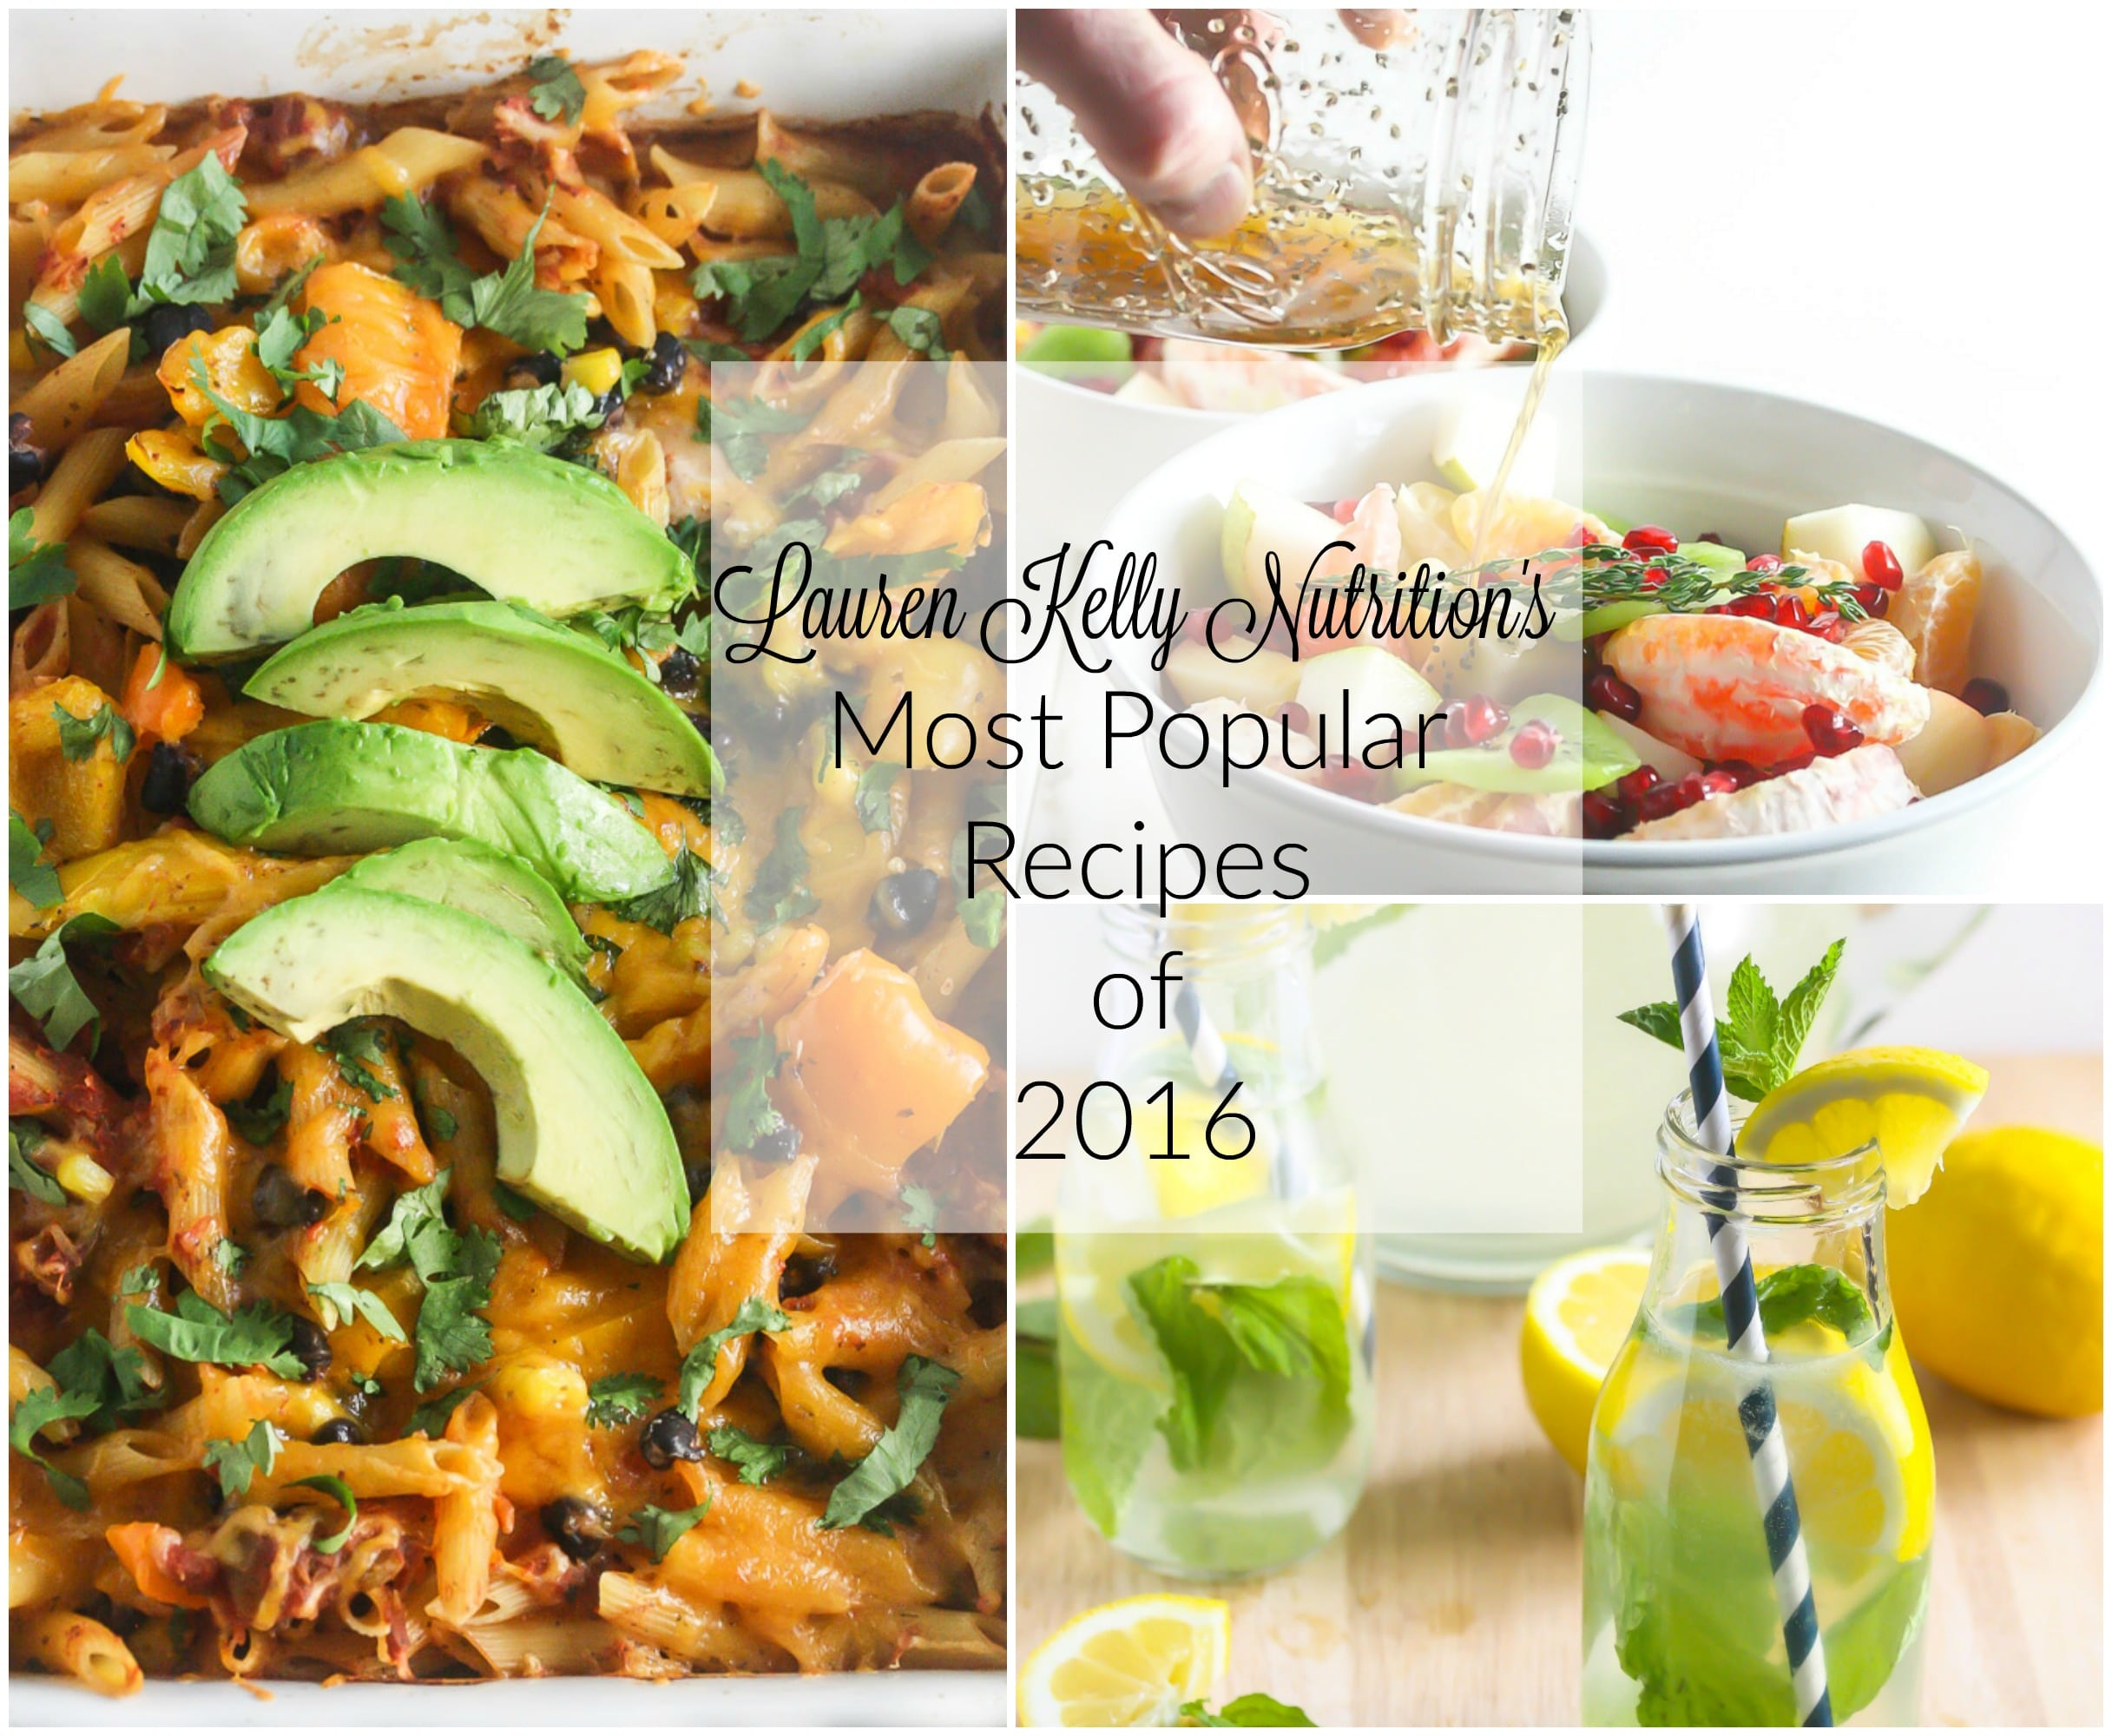 Lauren Kelly Nutrition's Most Popular Recipes of 2016